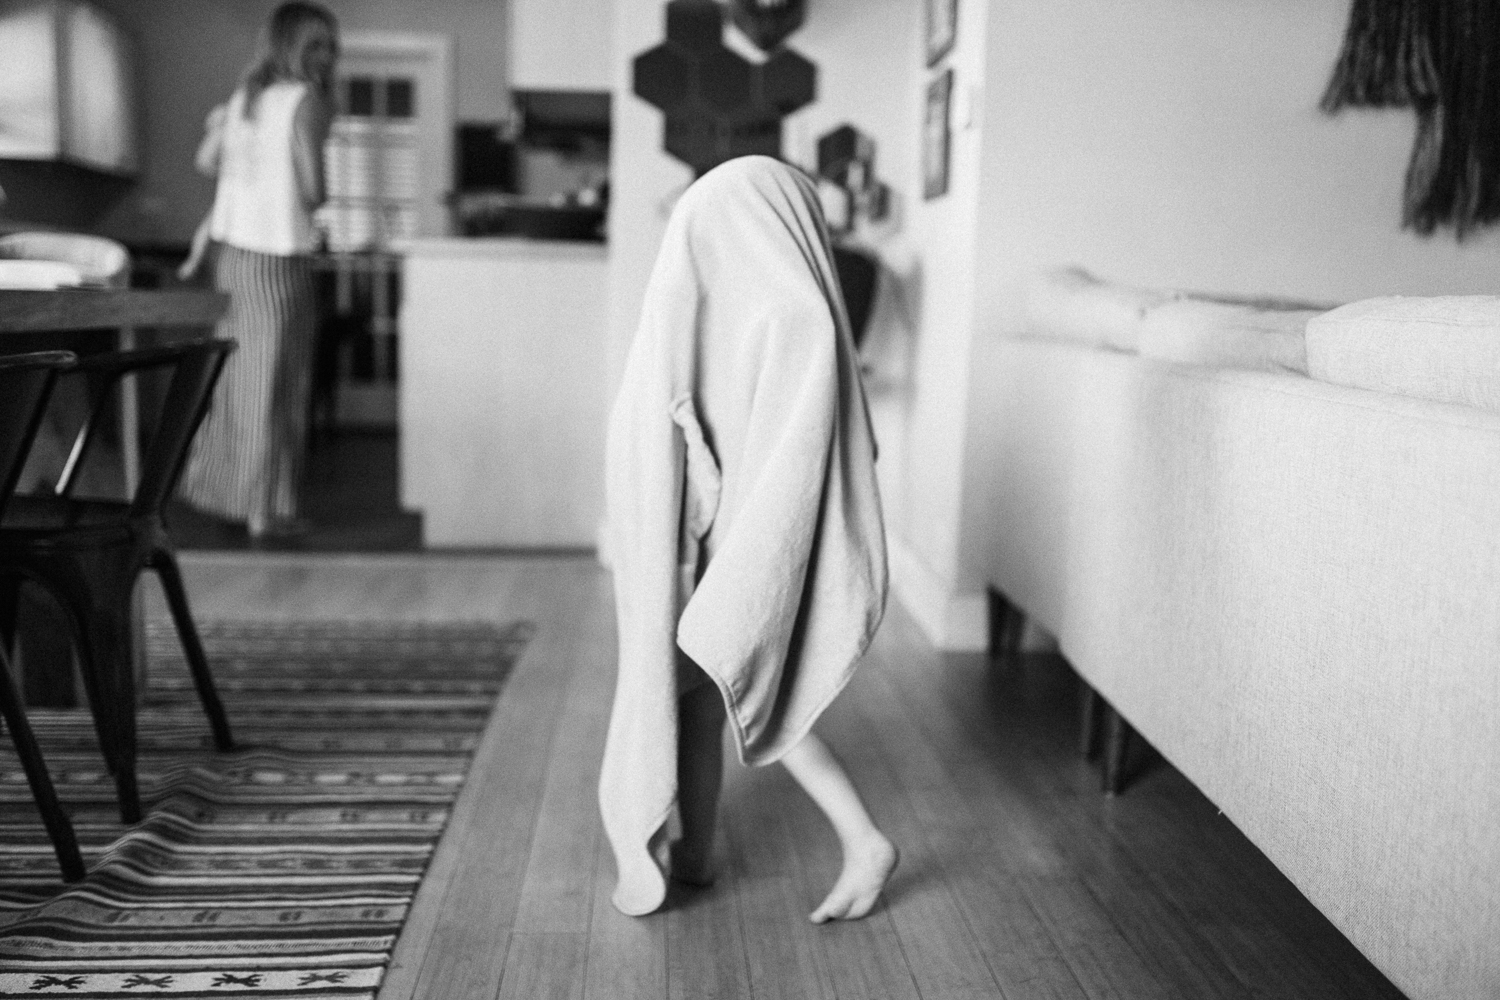 candid-and-natural-black-and-white-girl-under-blanket-dancing-in-kitchen-slc-utah